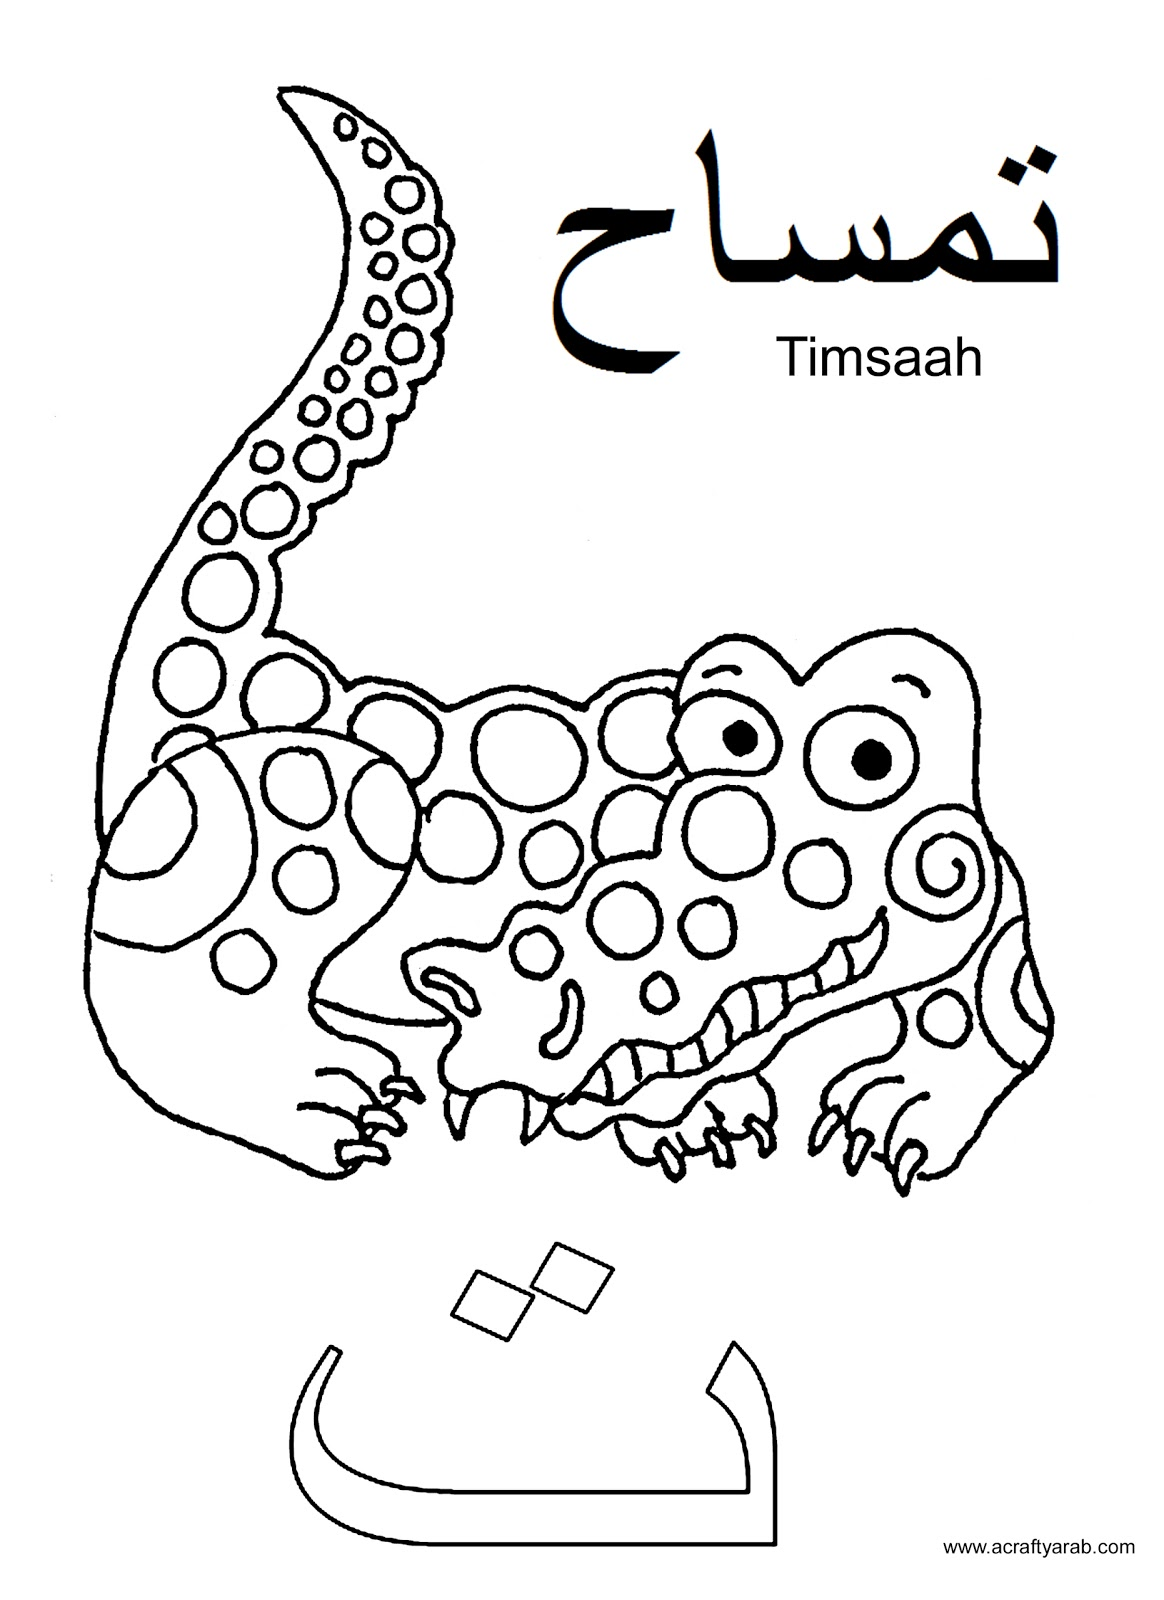 A Crafty Arab Arabic Alphabet Coloring Pages Ta Is For Timsaah